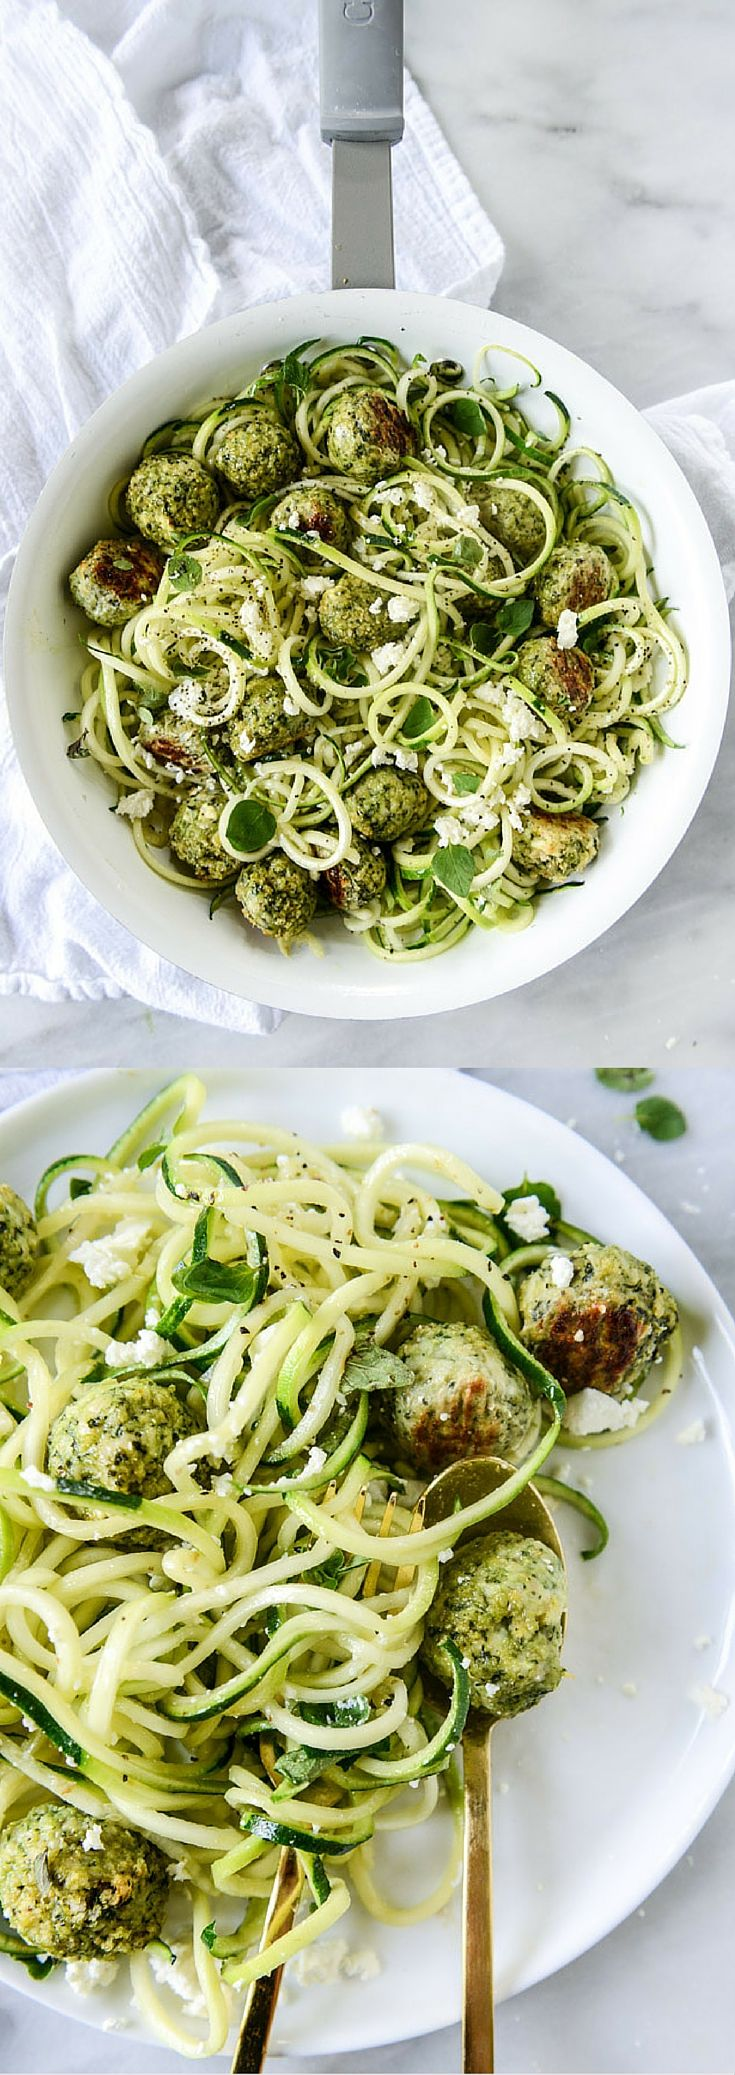 Zucchini Noodles with Chicken, Feta and Spinach Meatballs by @howsweeteats I howsweeteats.com